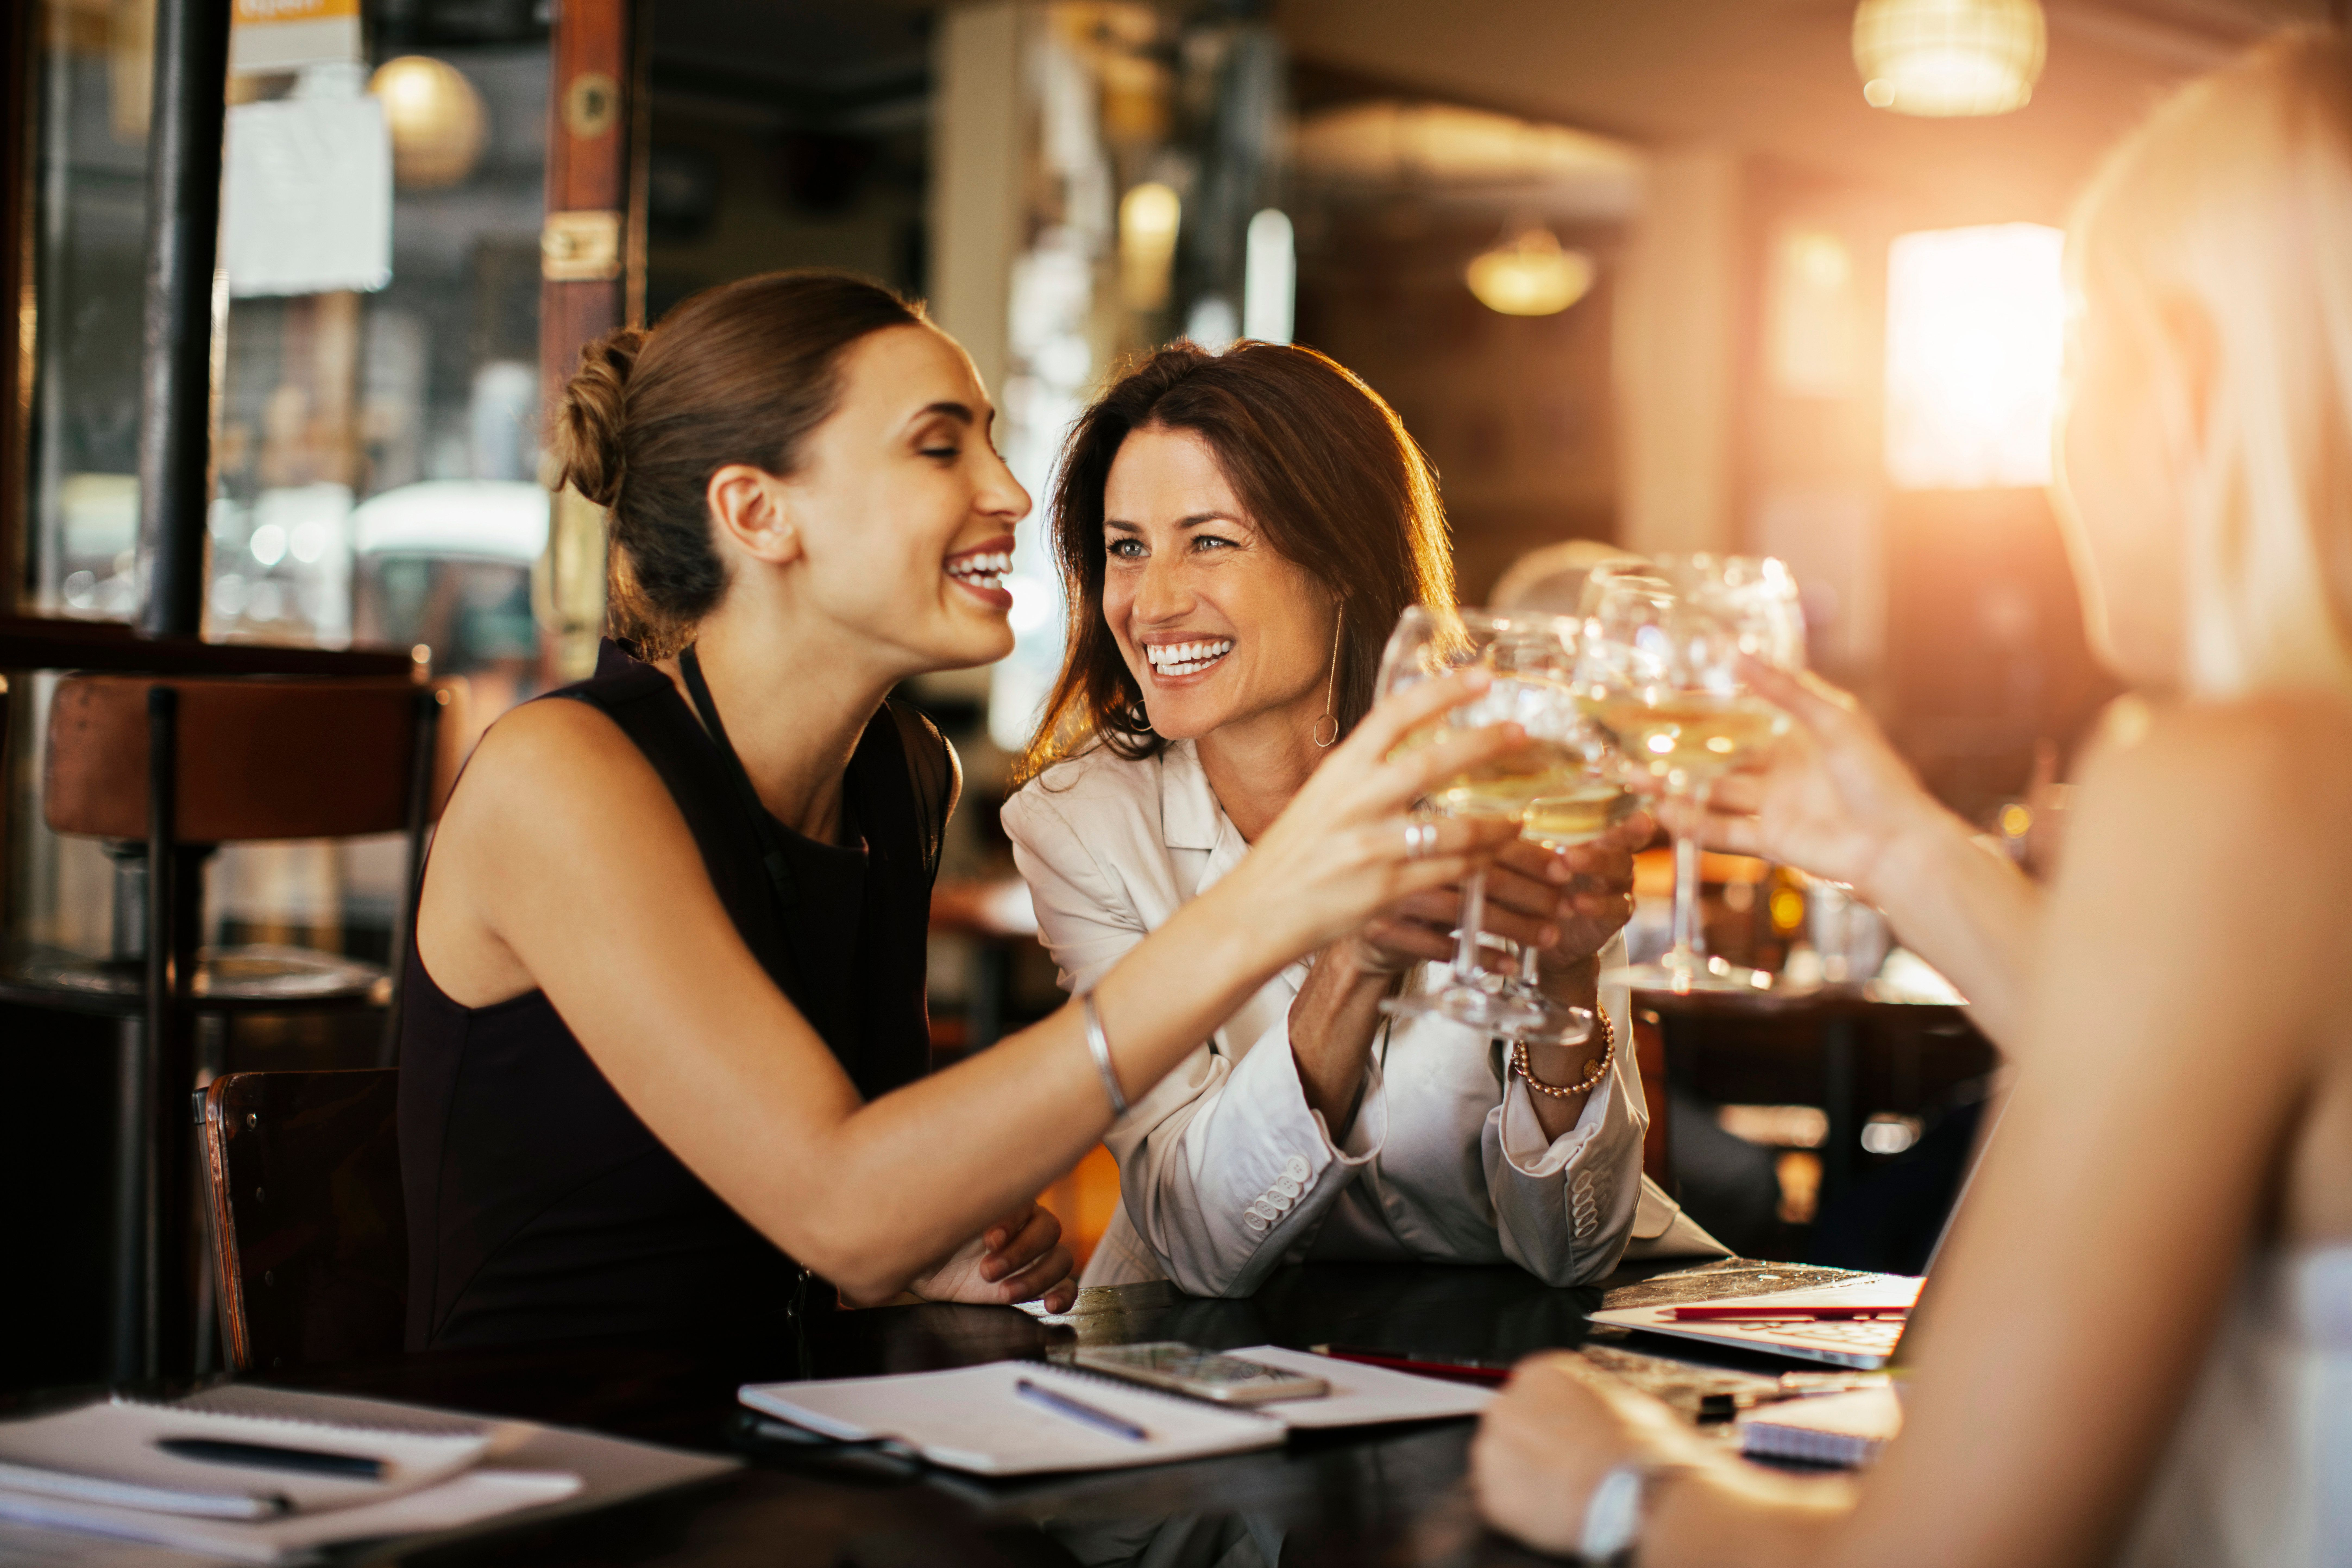 10 Reasons Why Socialising With Colleagues Is Good For Your Health And Your